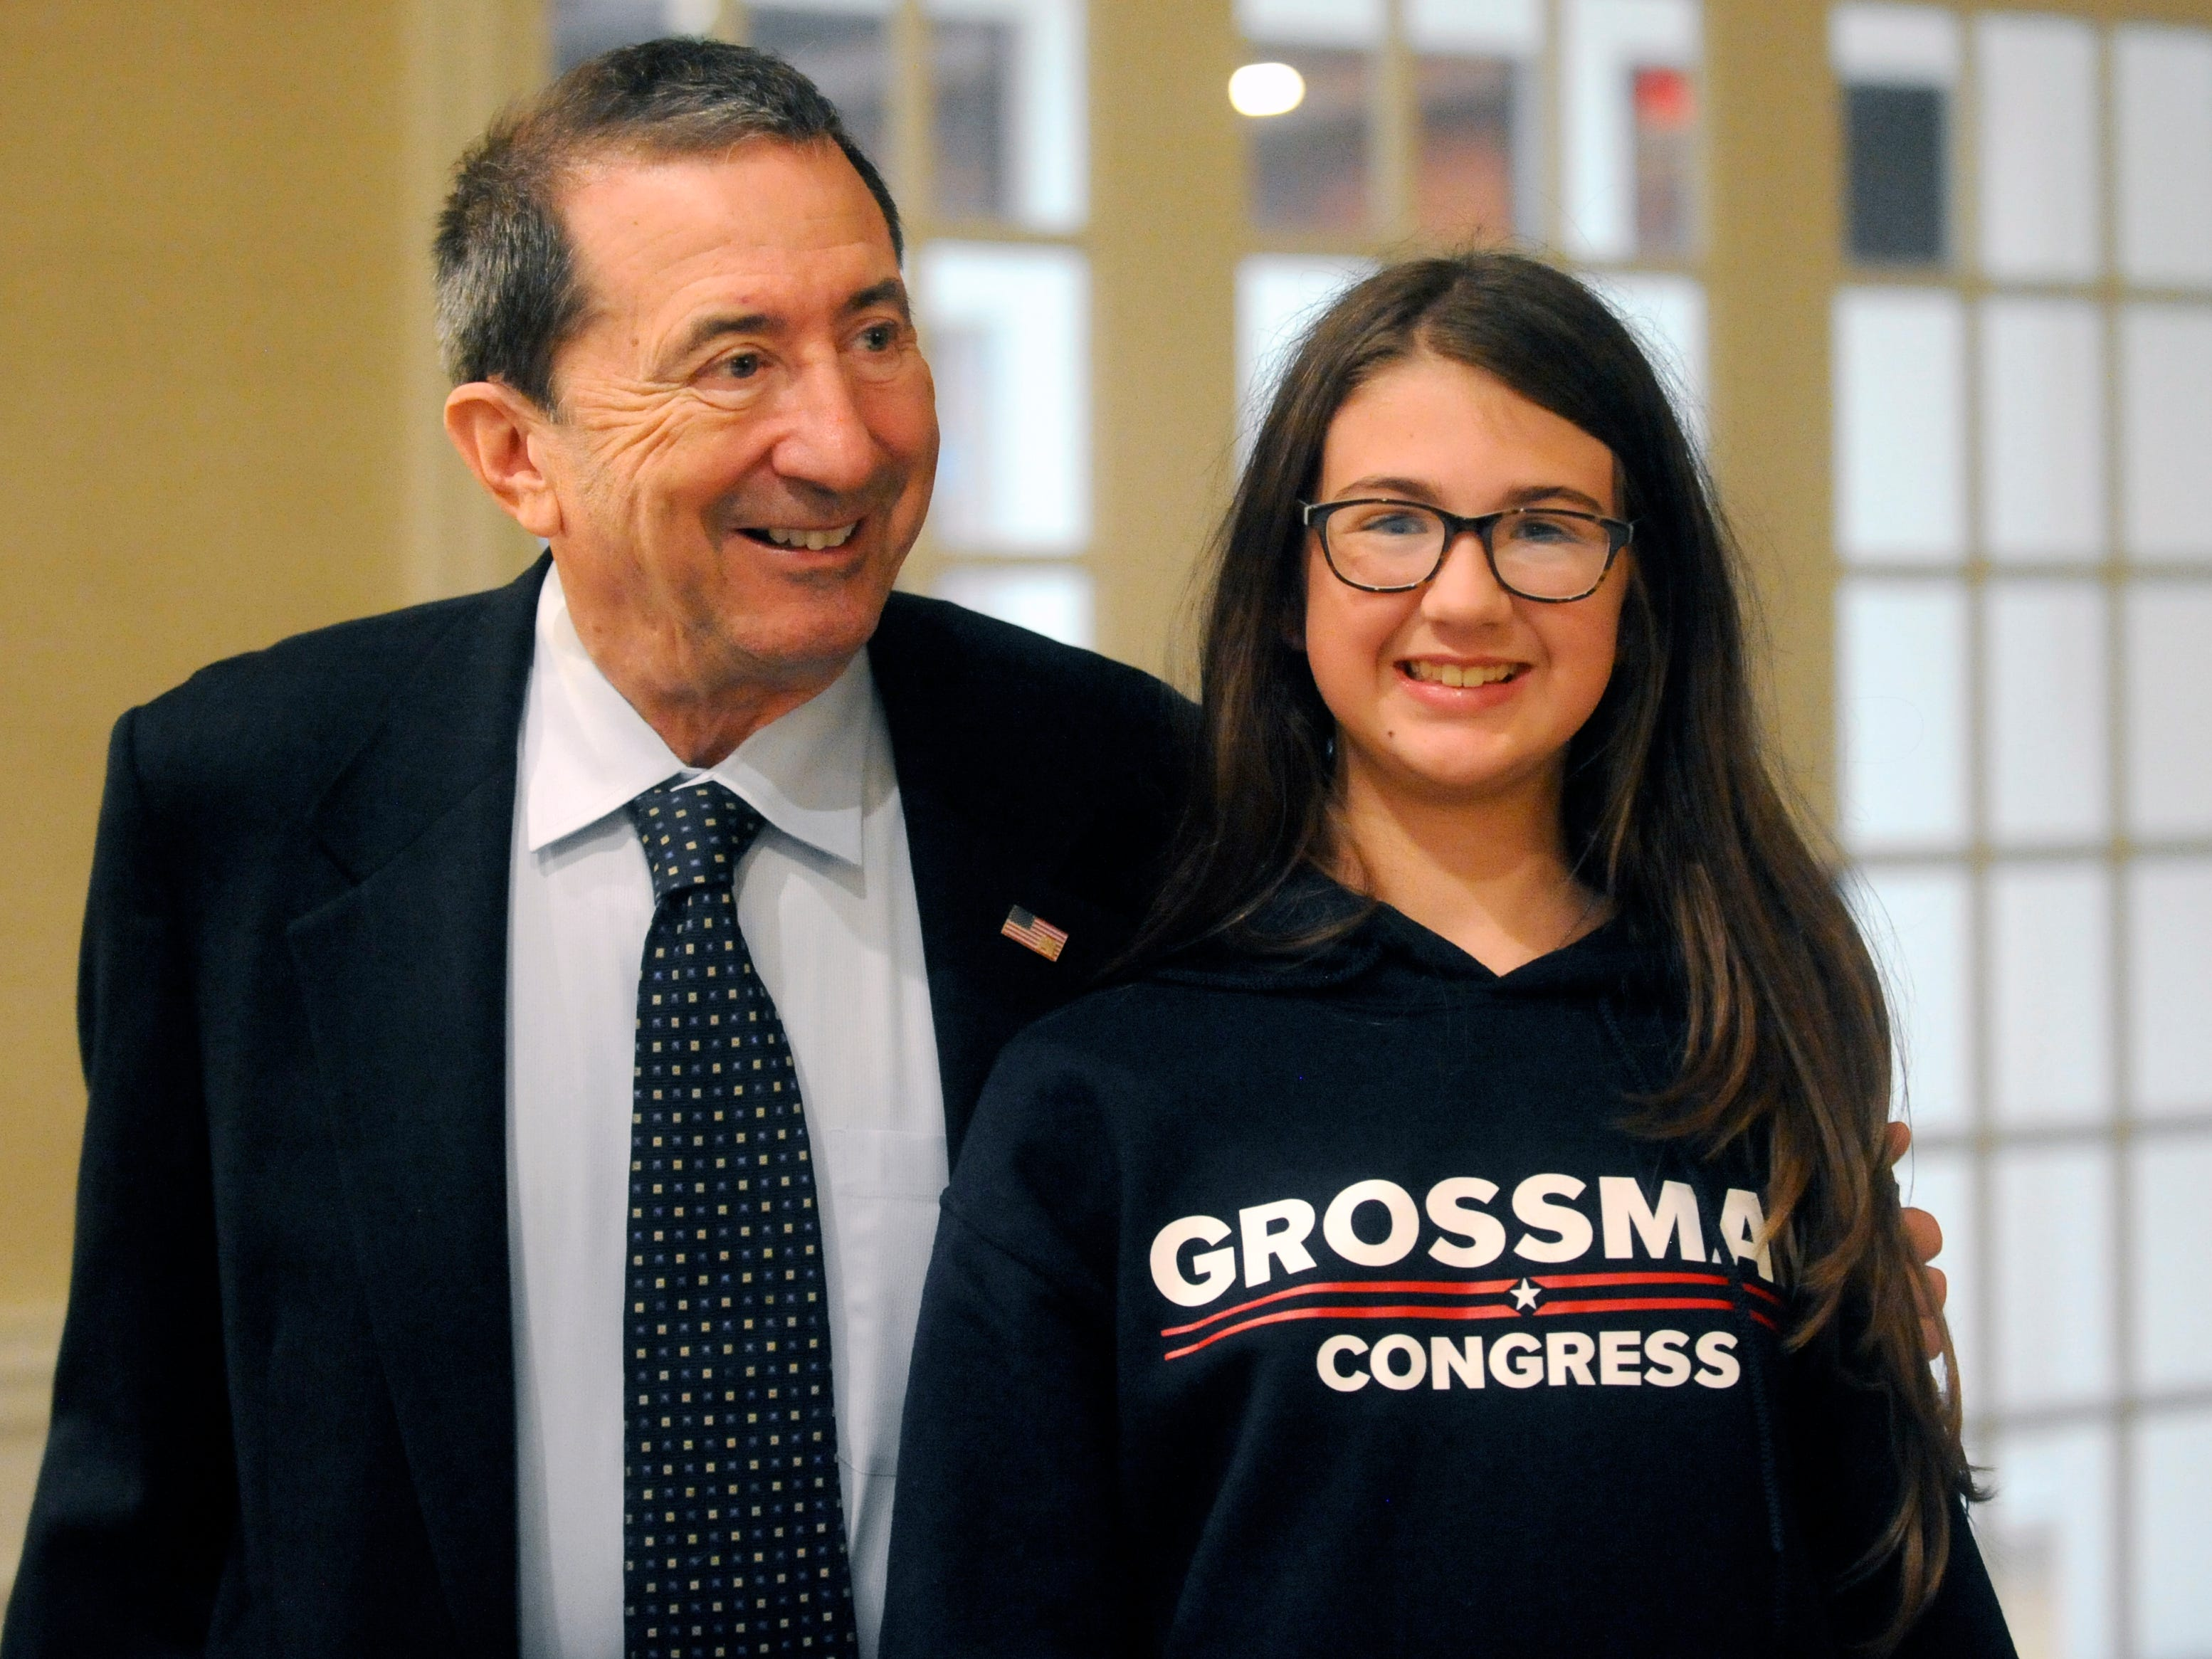 2nd Congressional District candidate Seth Grossman stands with 13-year-old Alexis Fisher on election night at Linwood Country Club in Linwood, NJ on Tuesday, November 6, 2018.